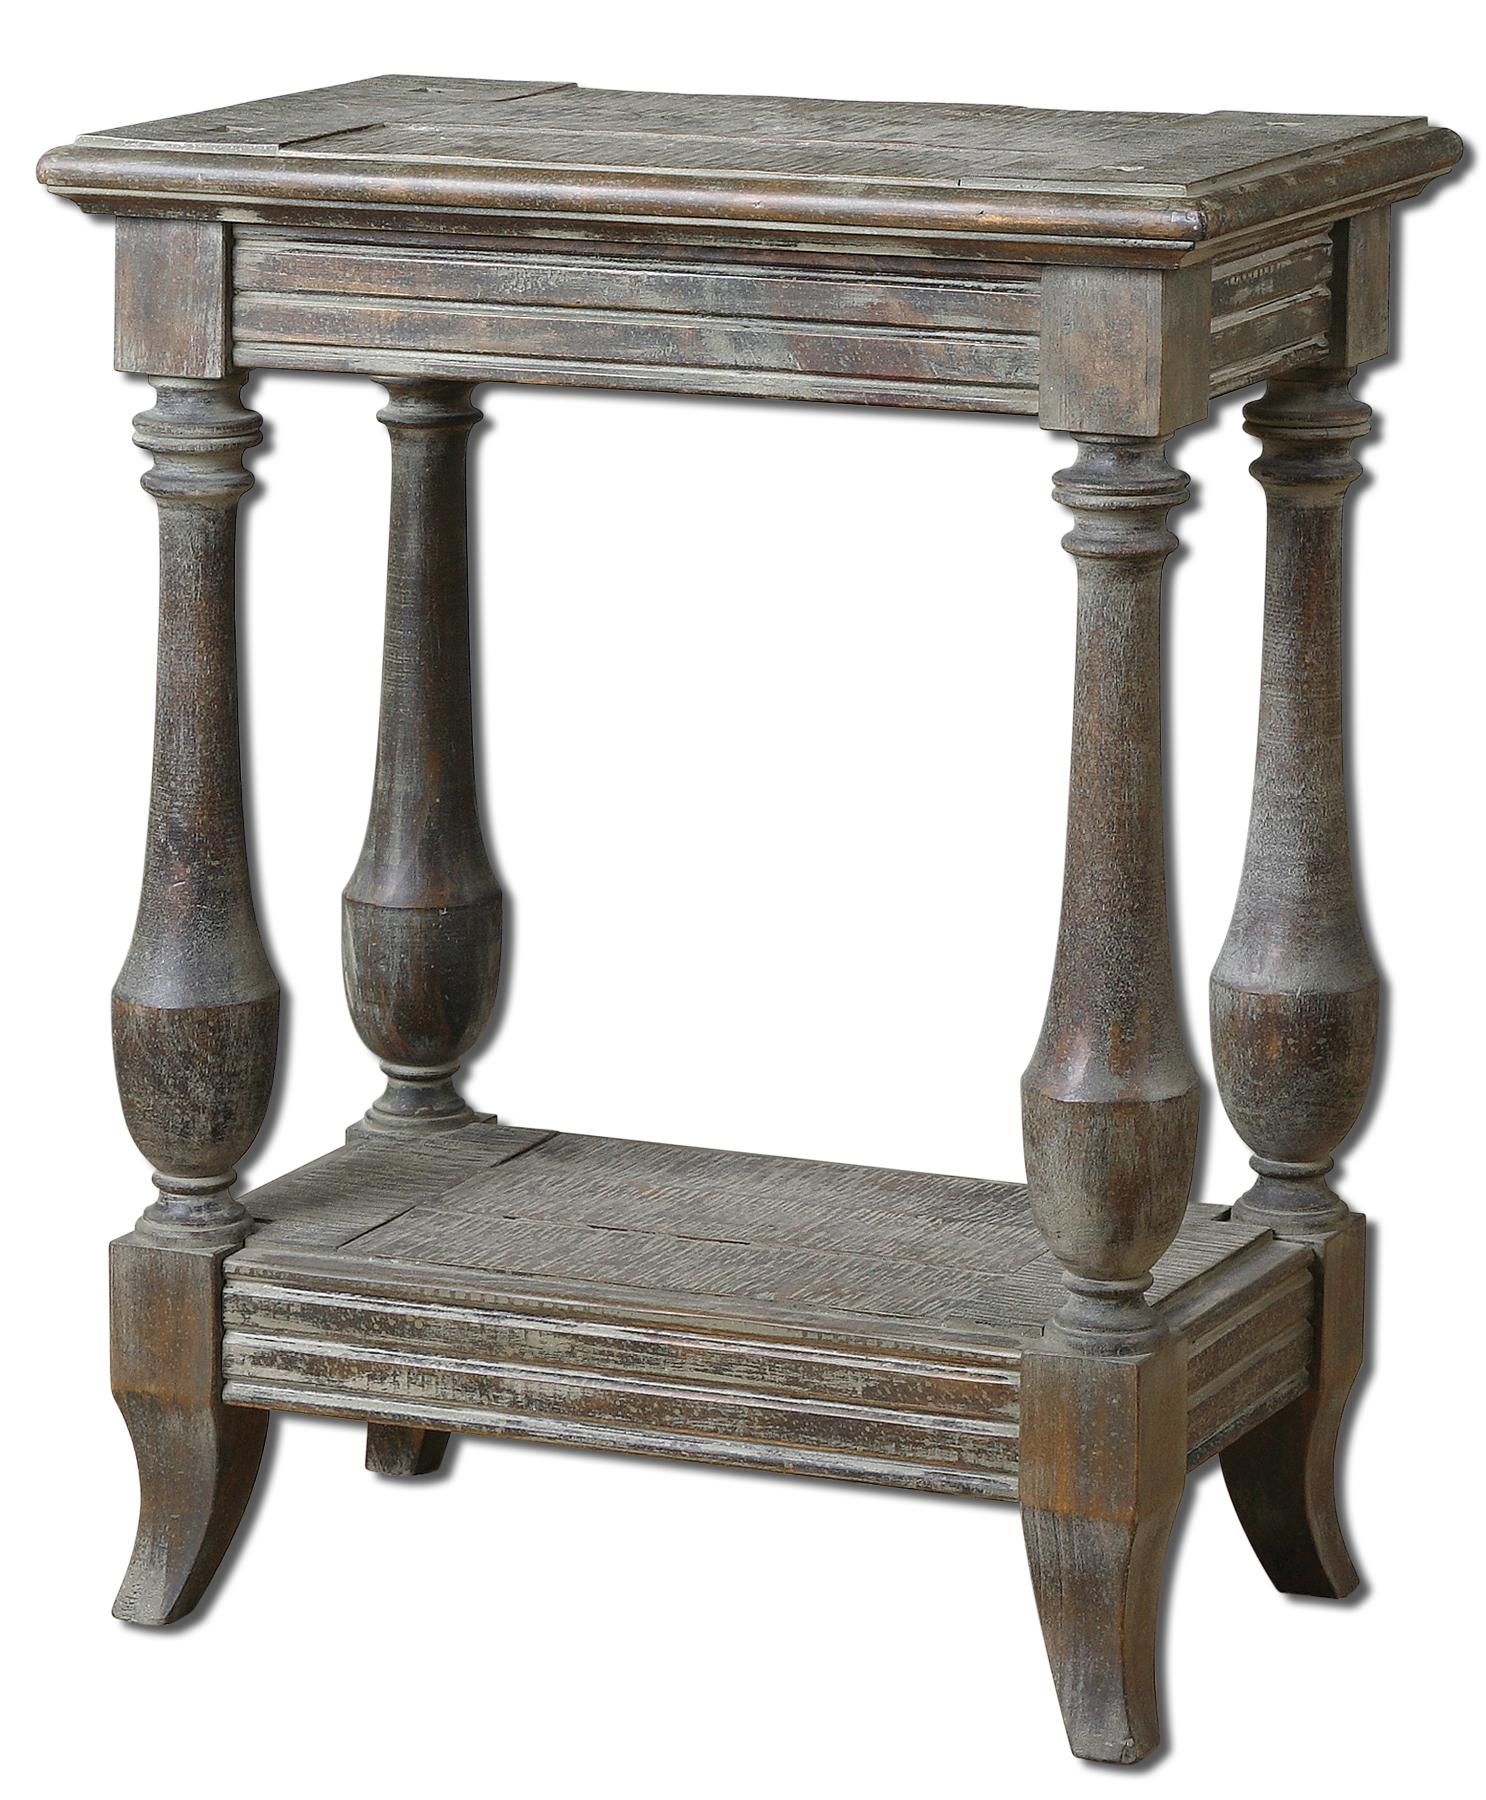 Accent Furniture - Occasional Tables Mardonio Side Table by Uttermost at Upper Room Home Furnishings